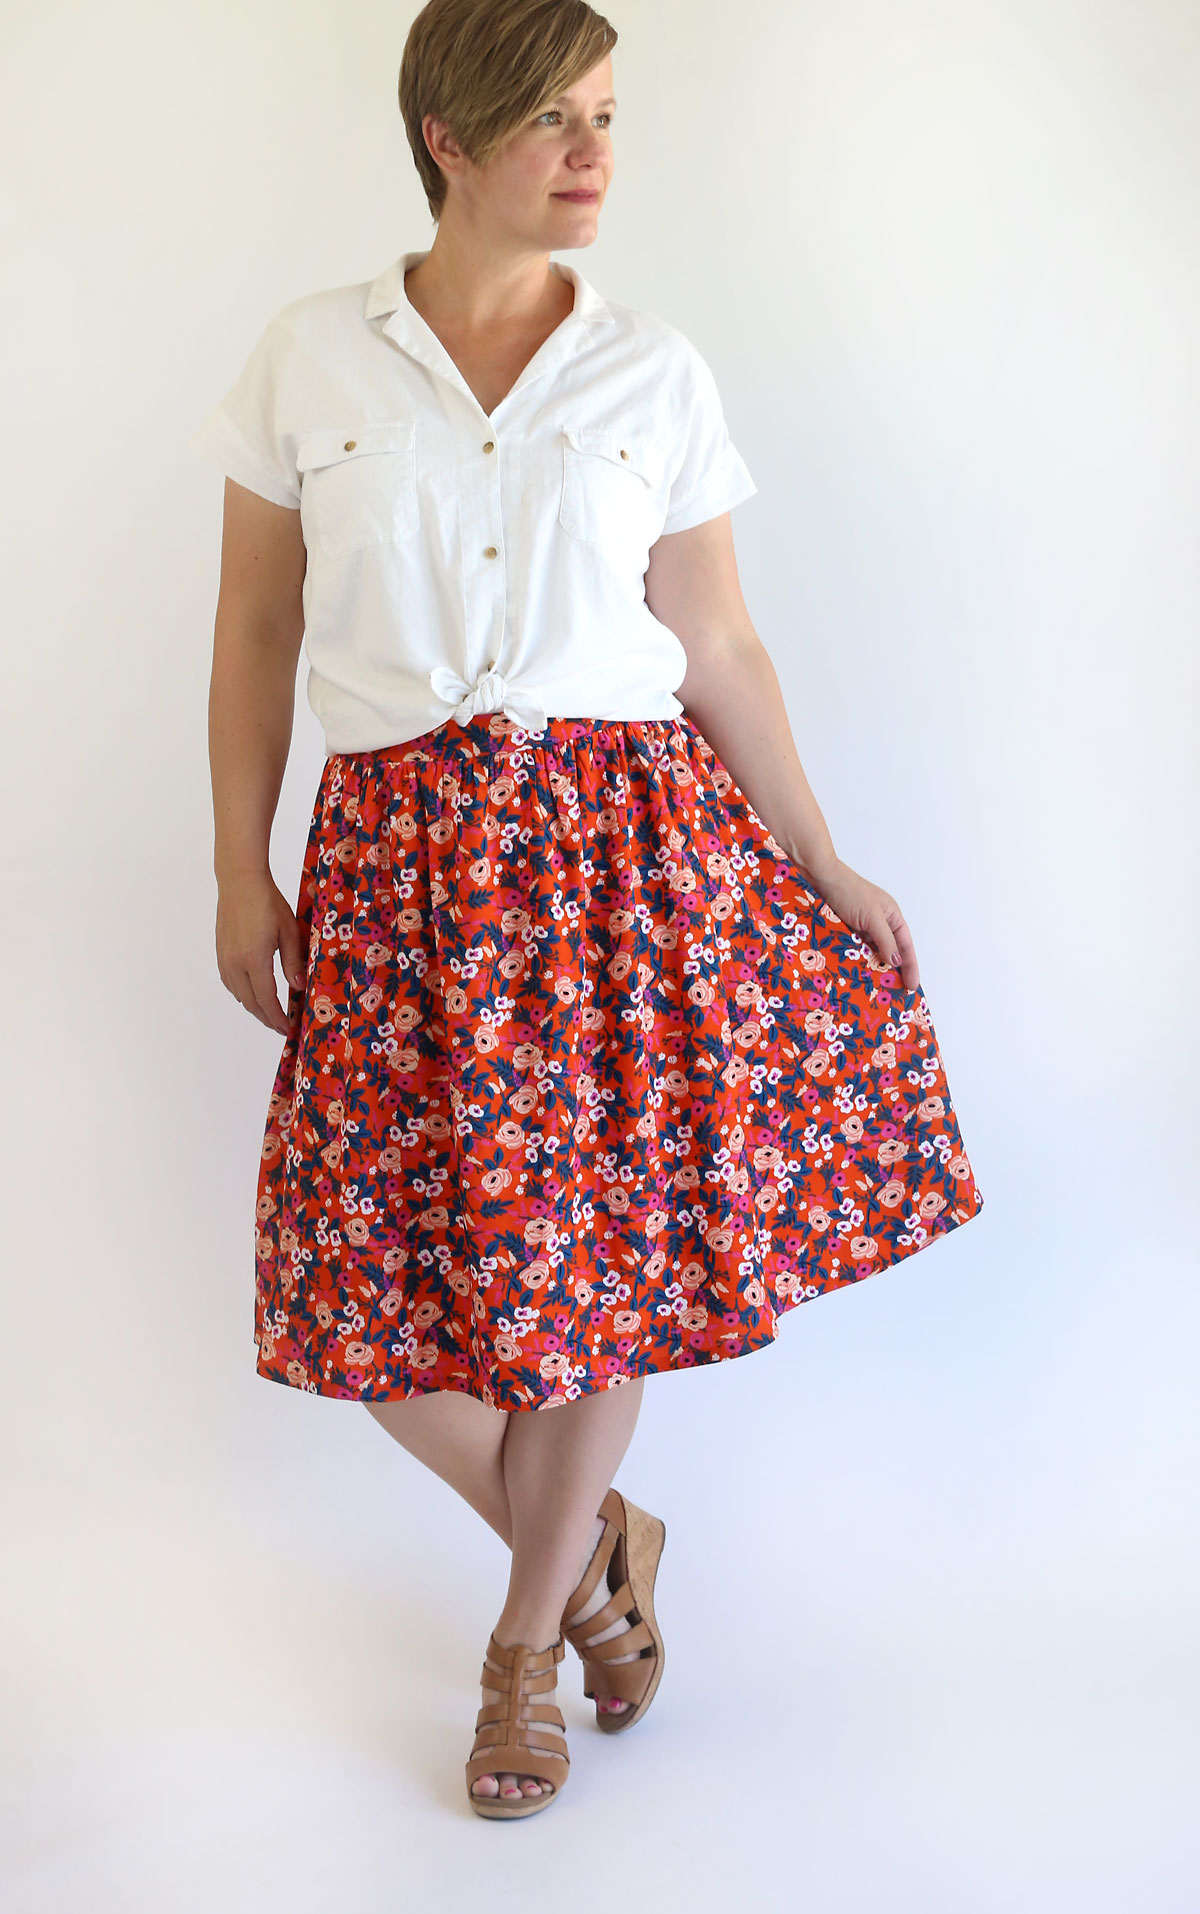 woman wearing red floral gathered skirt